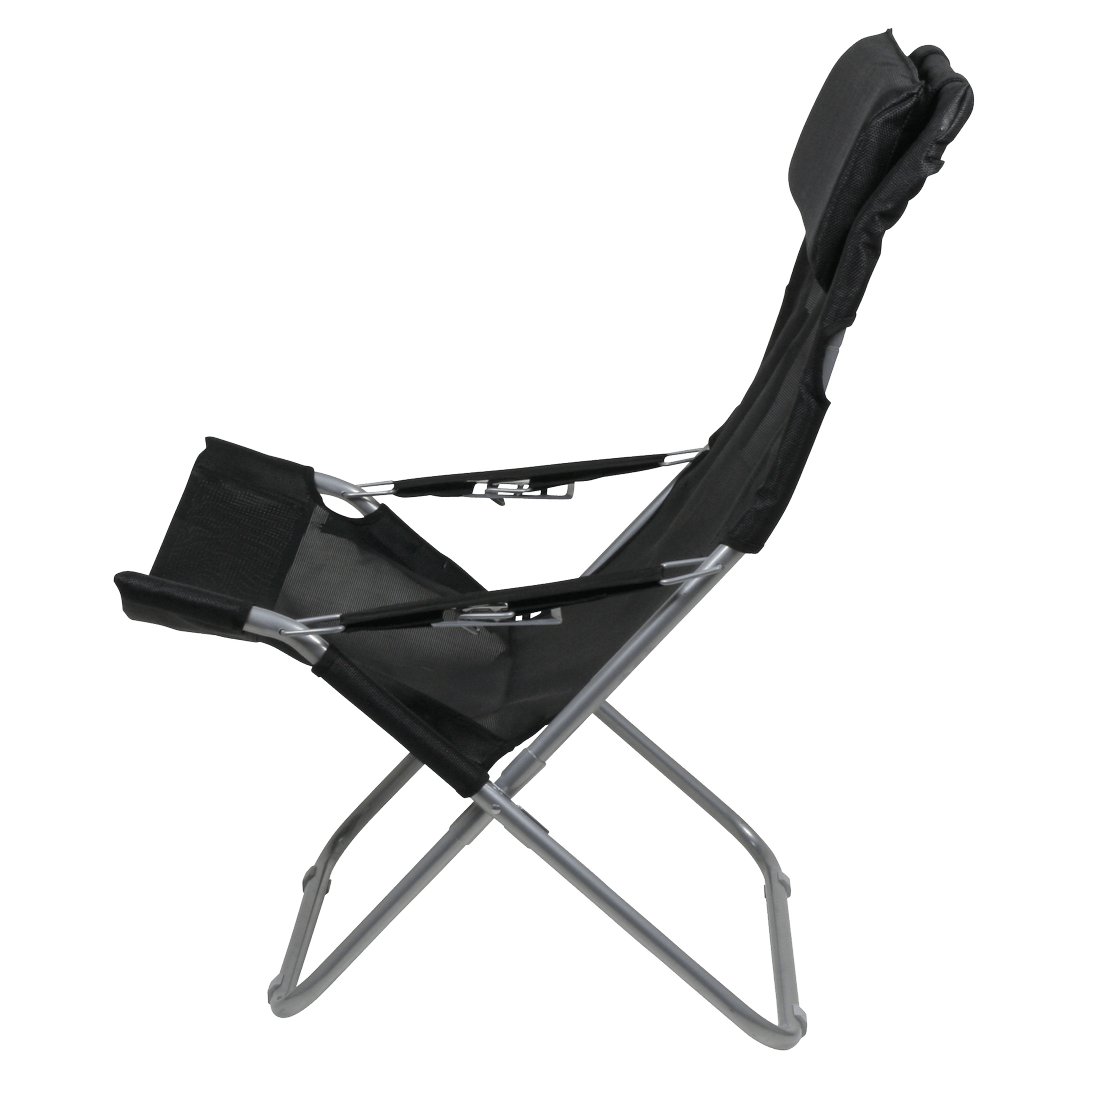 high outdoor folding chairs harley davidson pub table and 10t maxi chair camping relax back with head